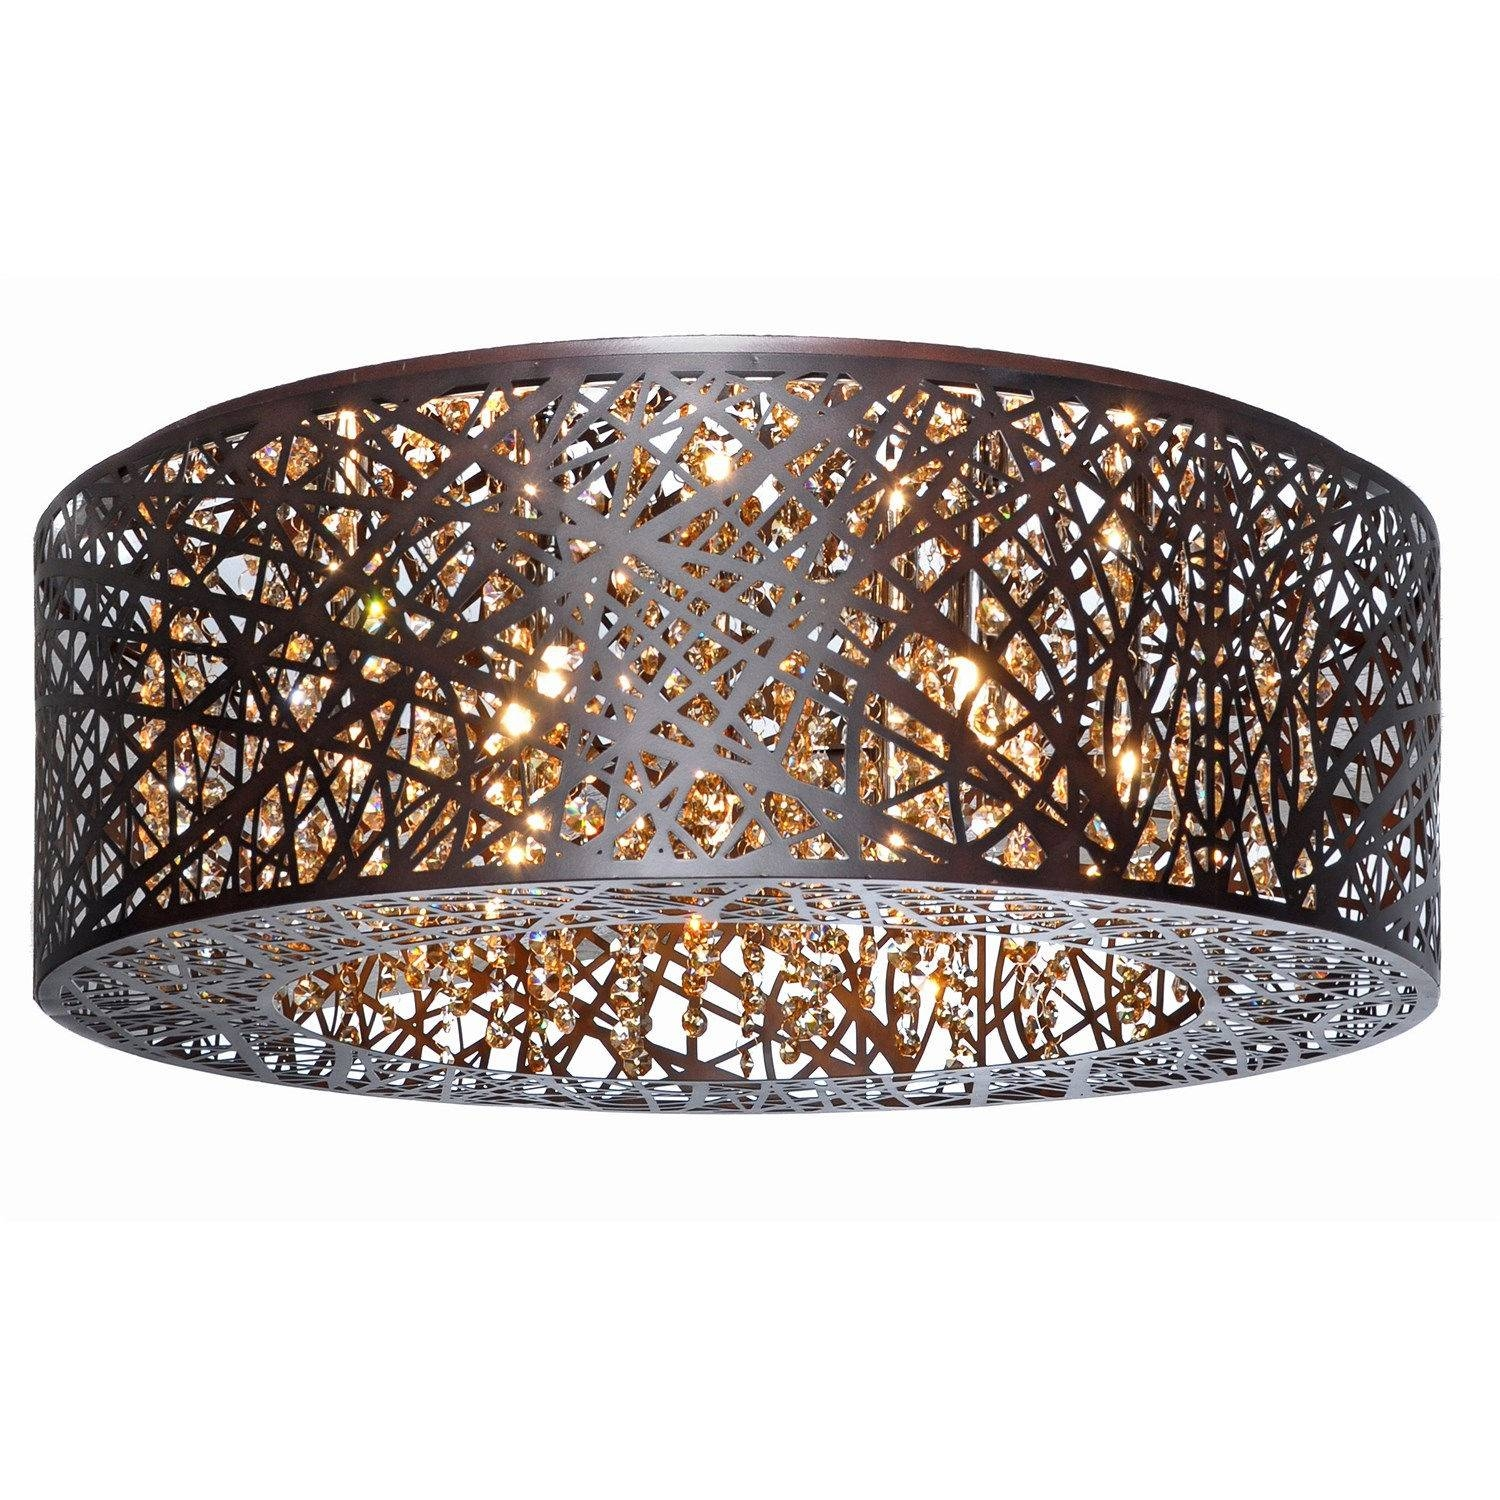 Awesome Inca 9 Light Pendant 35 For Your Modern Pendant Light With throughout Inca 9 Light Pendants (Image 1 of 15)